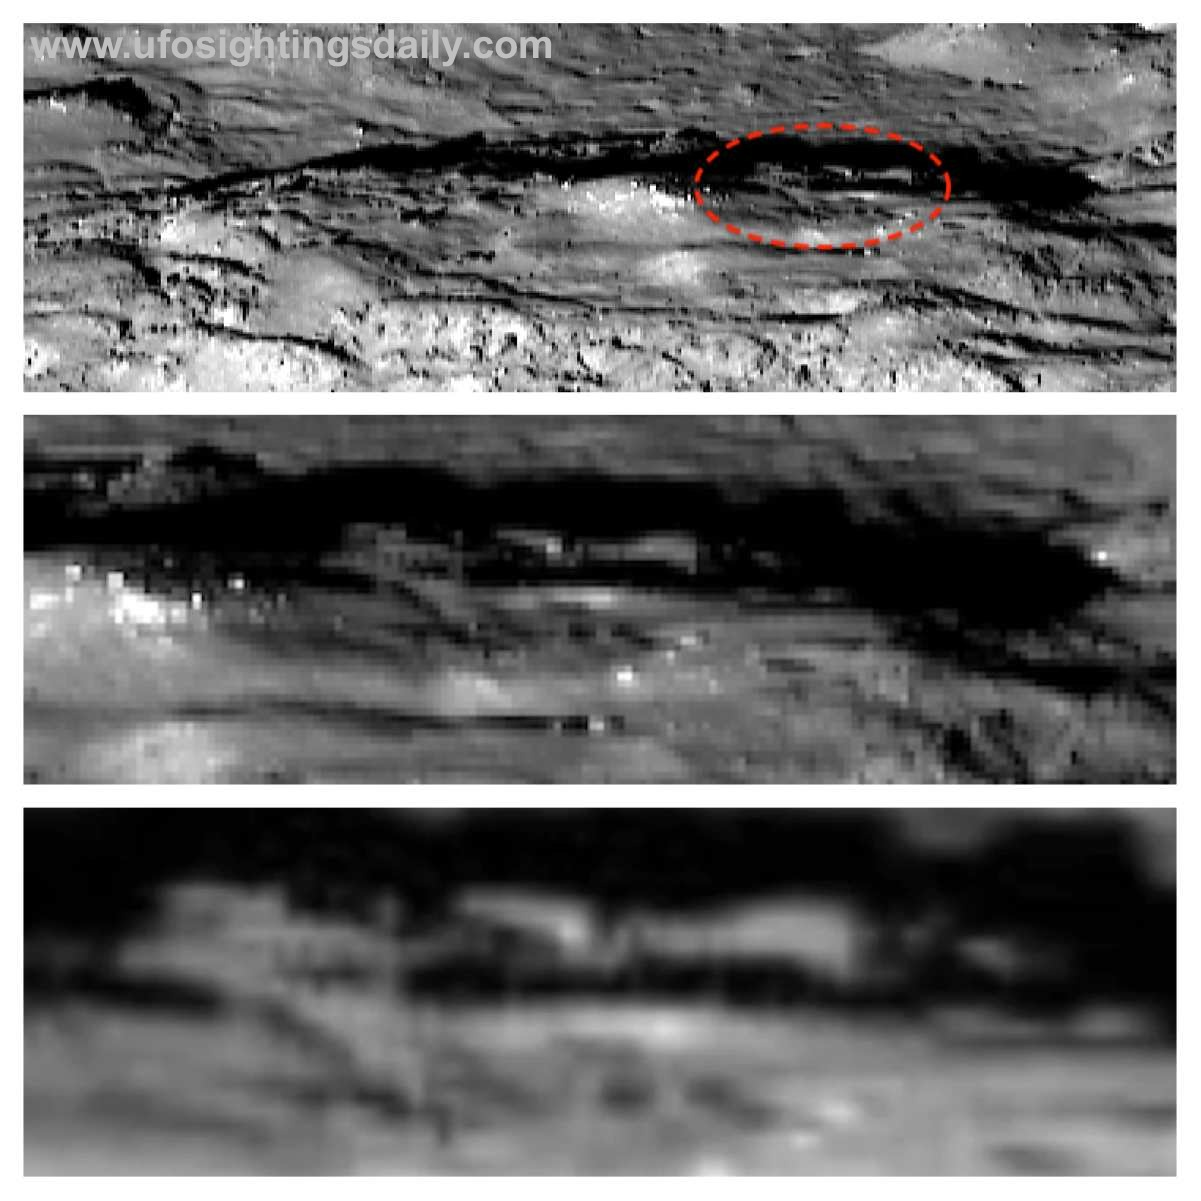 Discovered in tycho crater along with other structures jan 8 2013